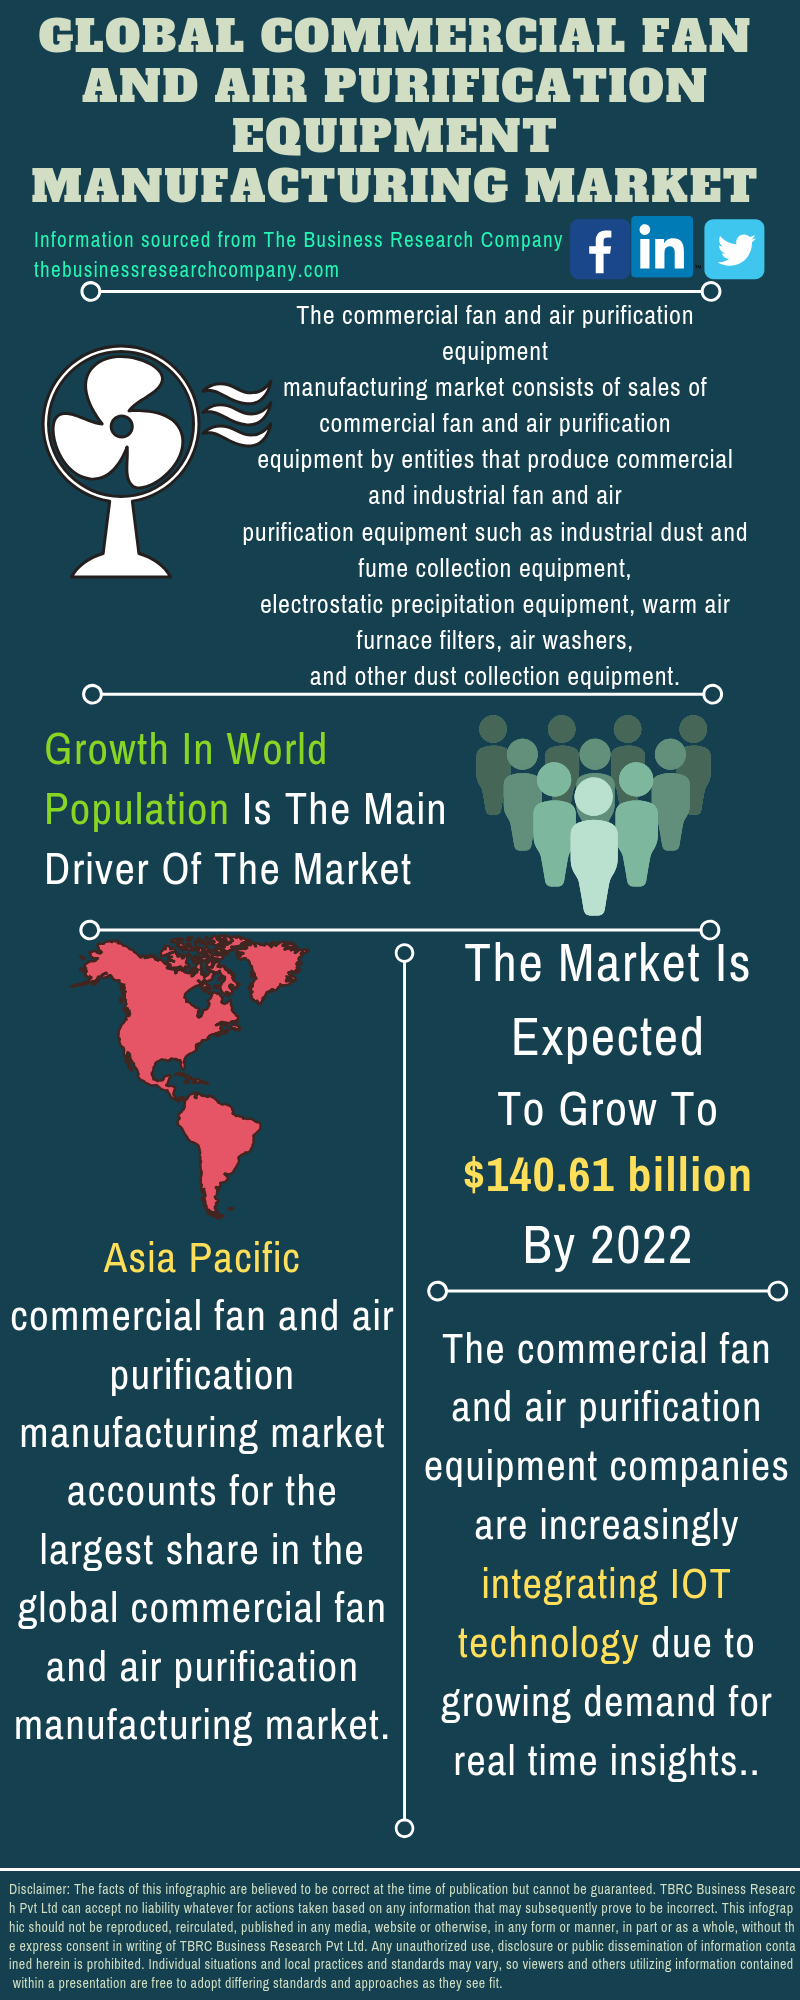 Commercial Fan And Air Purification Equipment Manufacturing Market